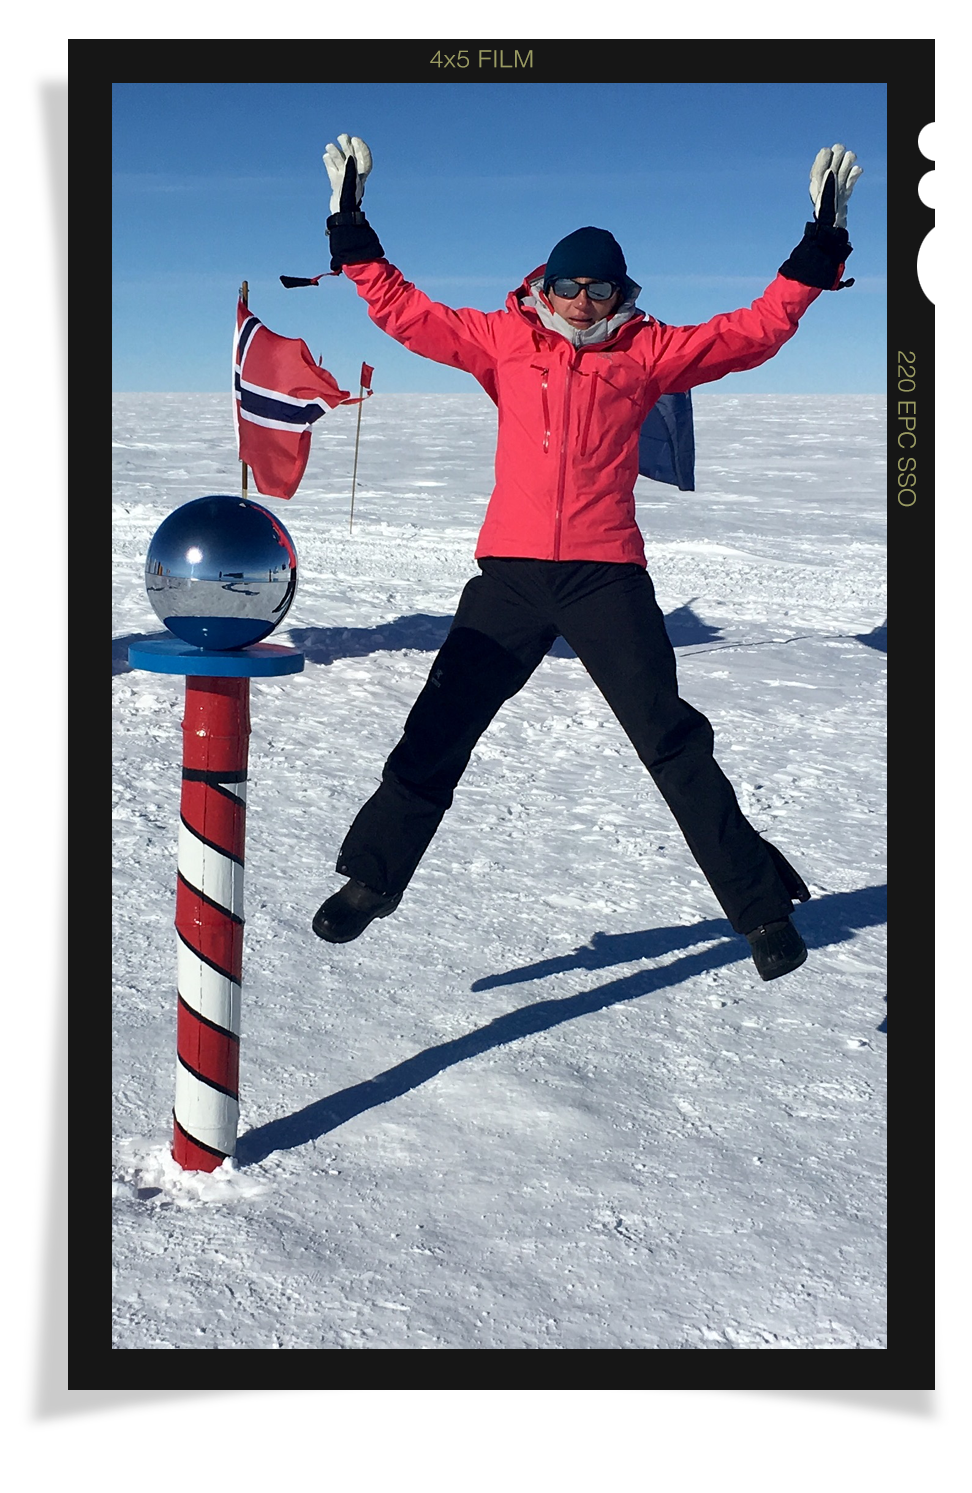 Gordon at the South Pole.